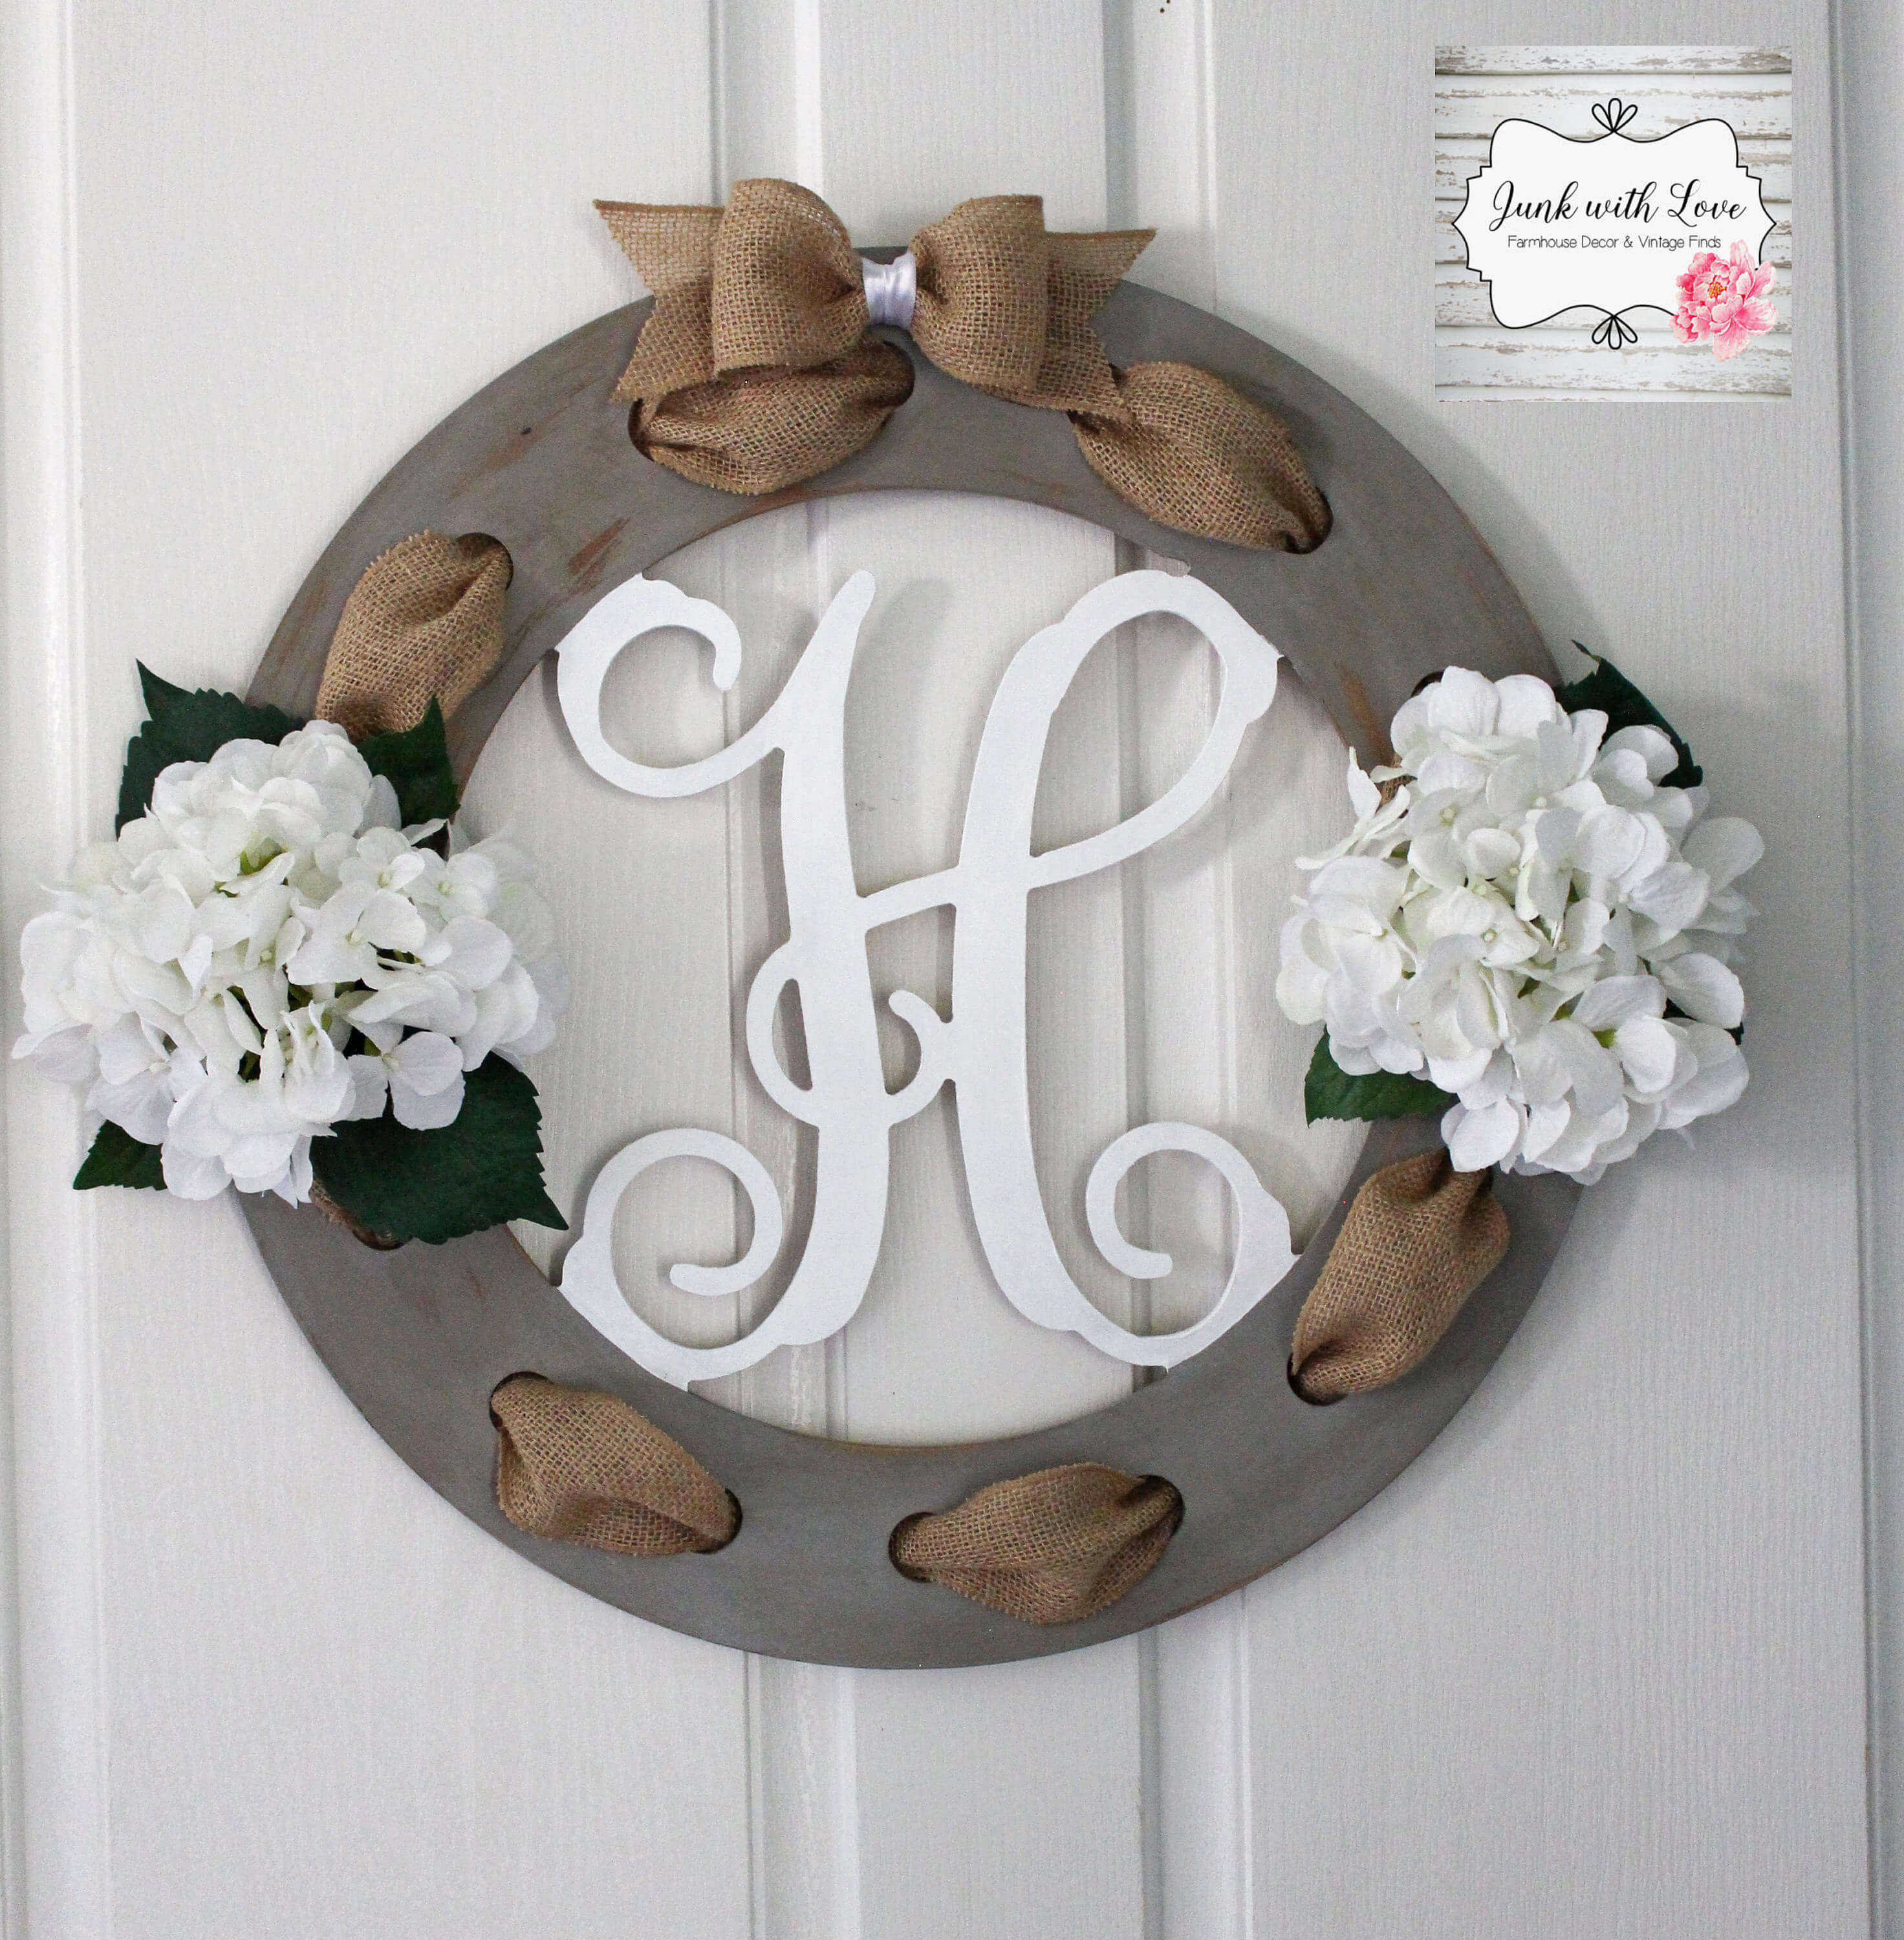 Burlap and Wood Wreath With Floral Accents